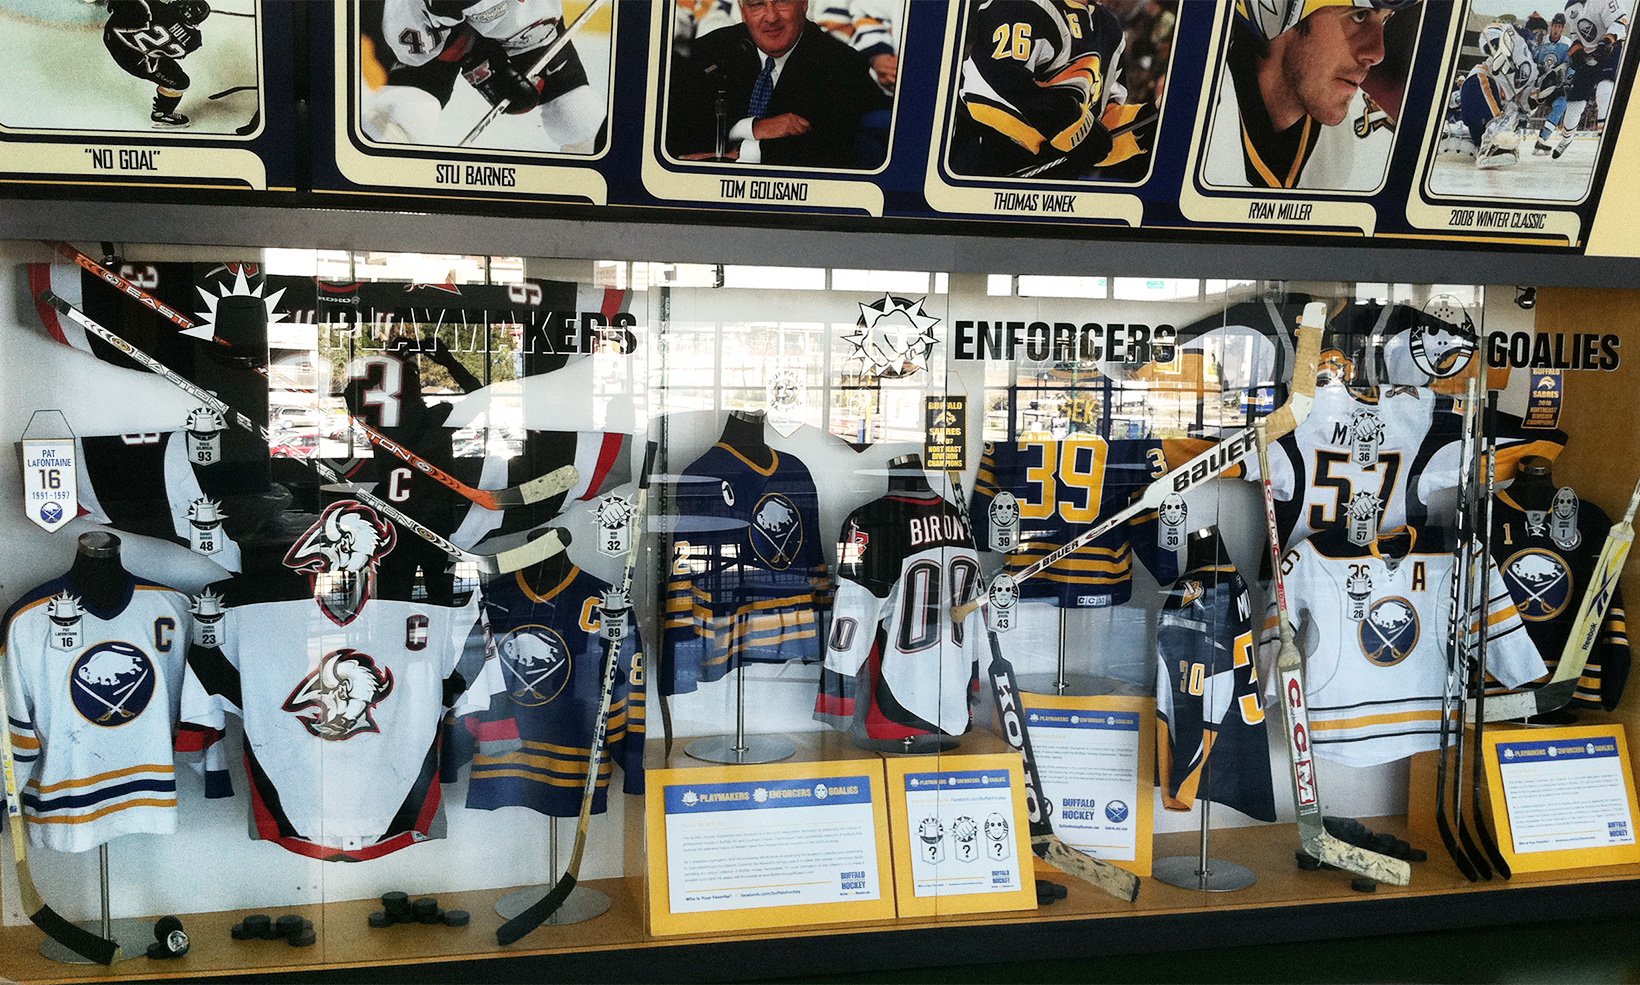 The Playmakers, Enforcers, and Goalies exhibit, designed by OW|EN, organizes Sabres' players into one of three categories